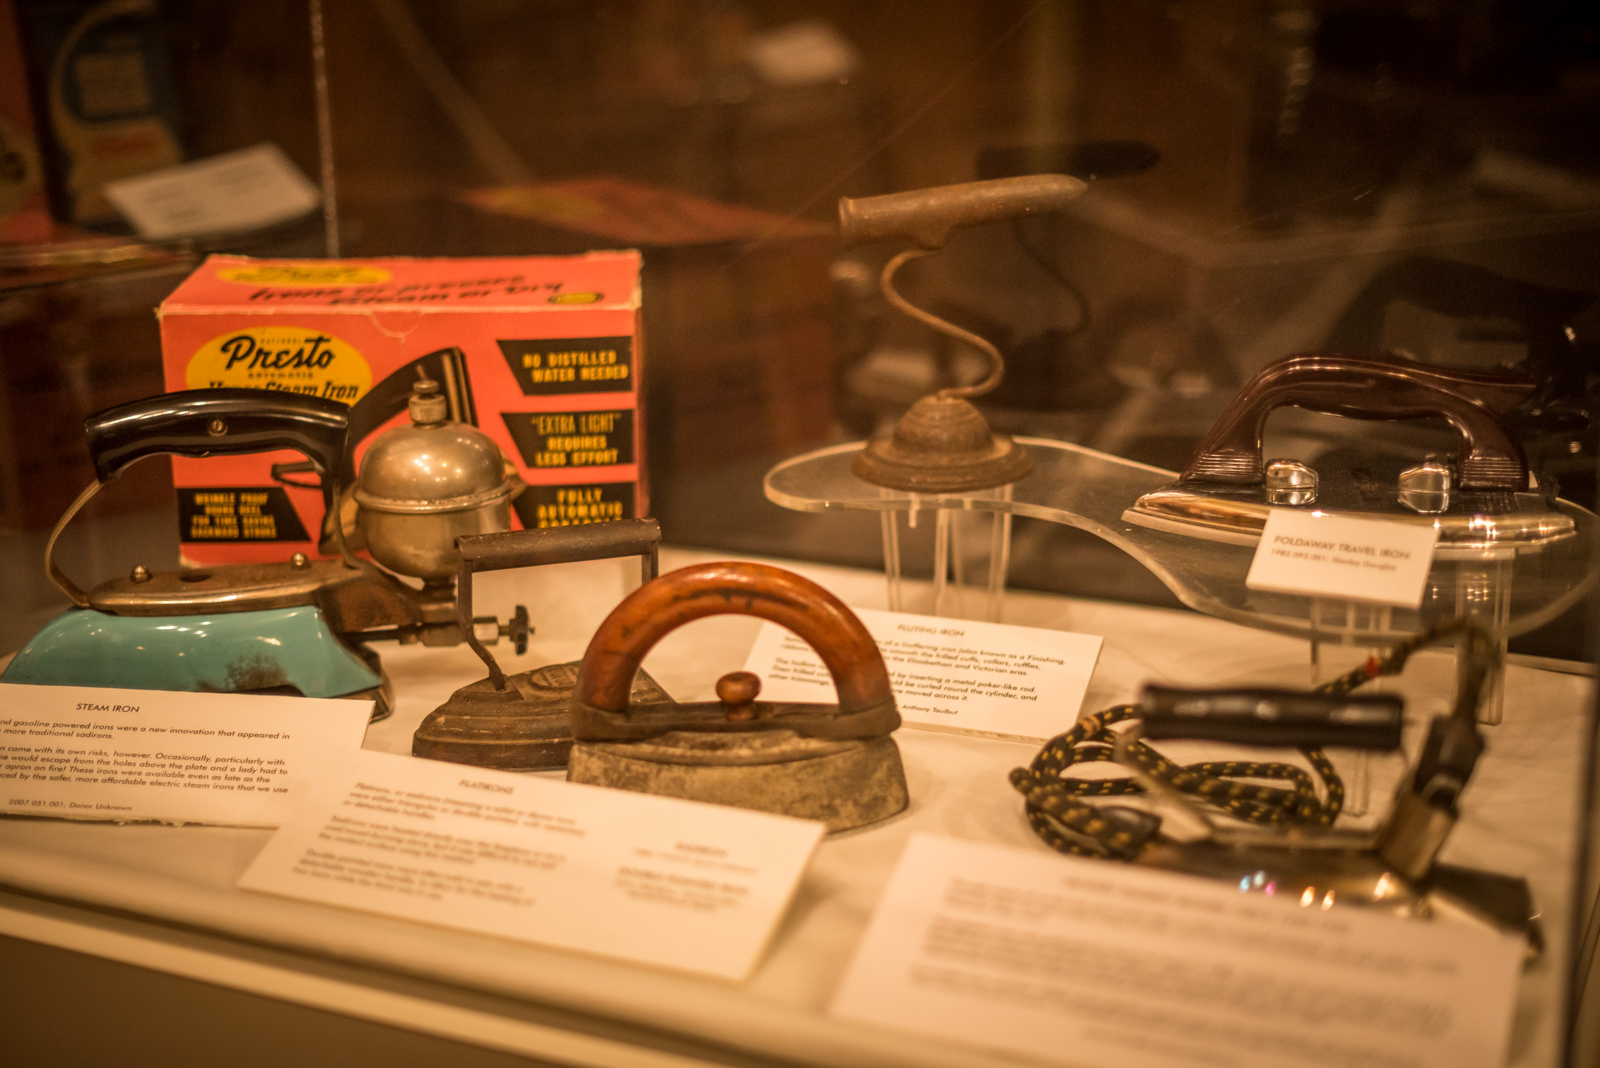 Display in the museum's main room showcasing a variety of iron degns from the early 1900s to the 1940s